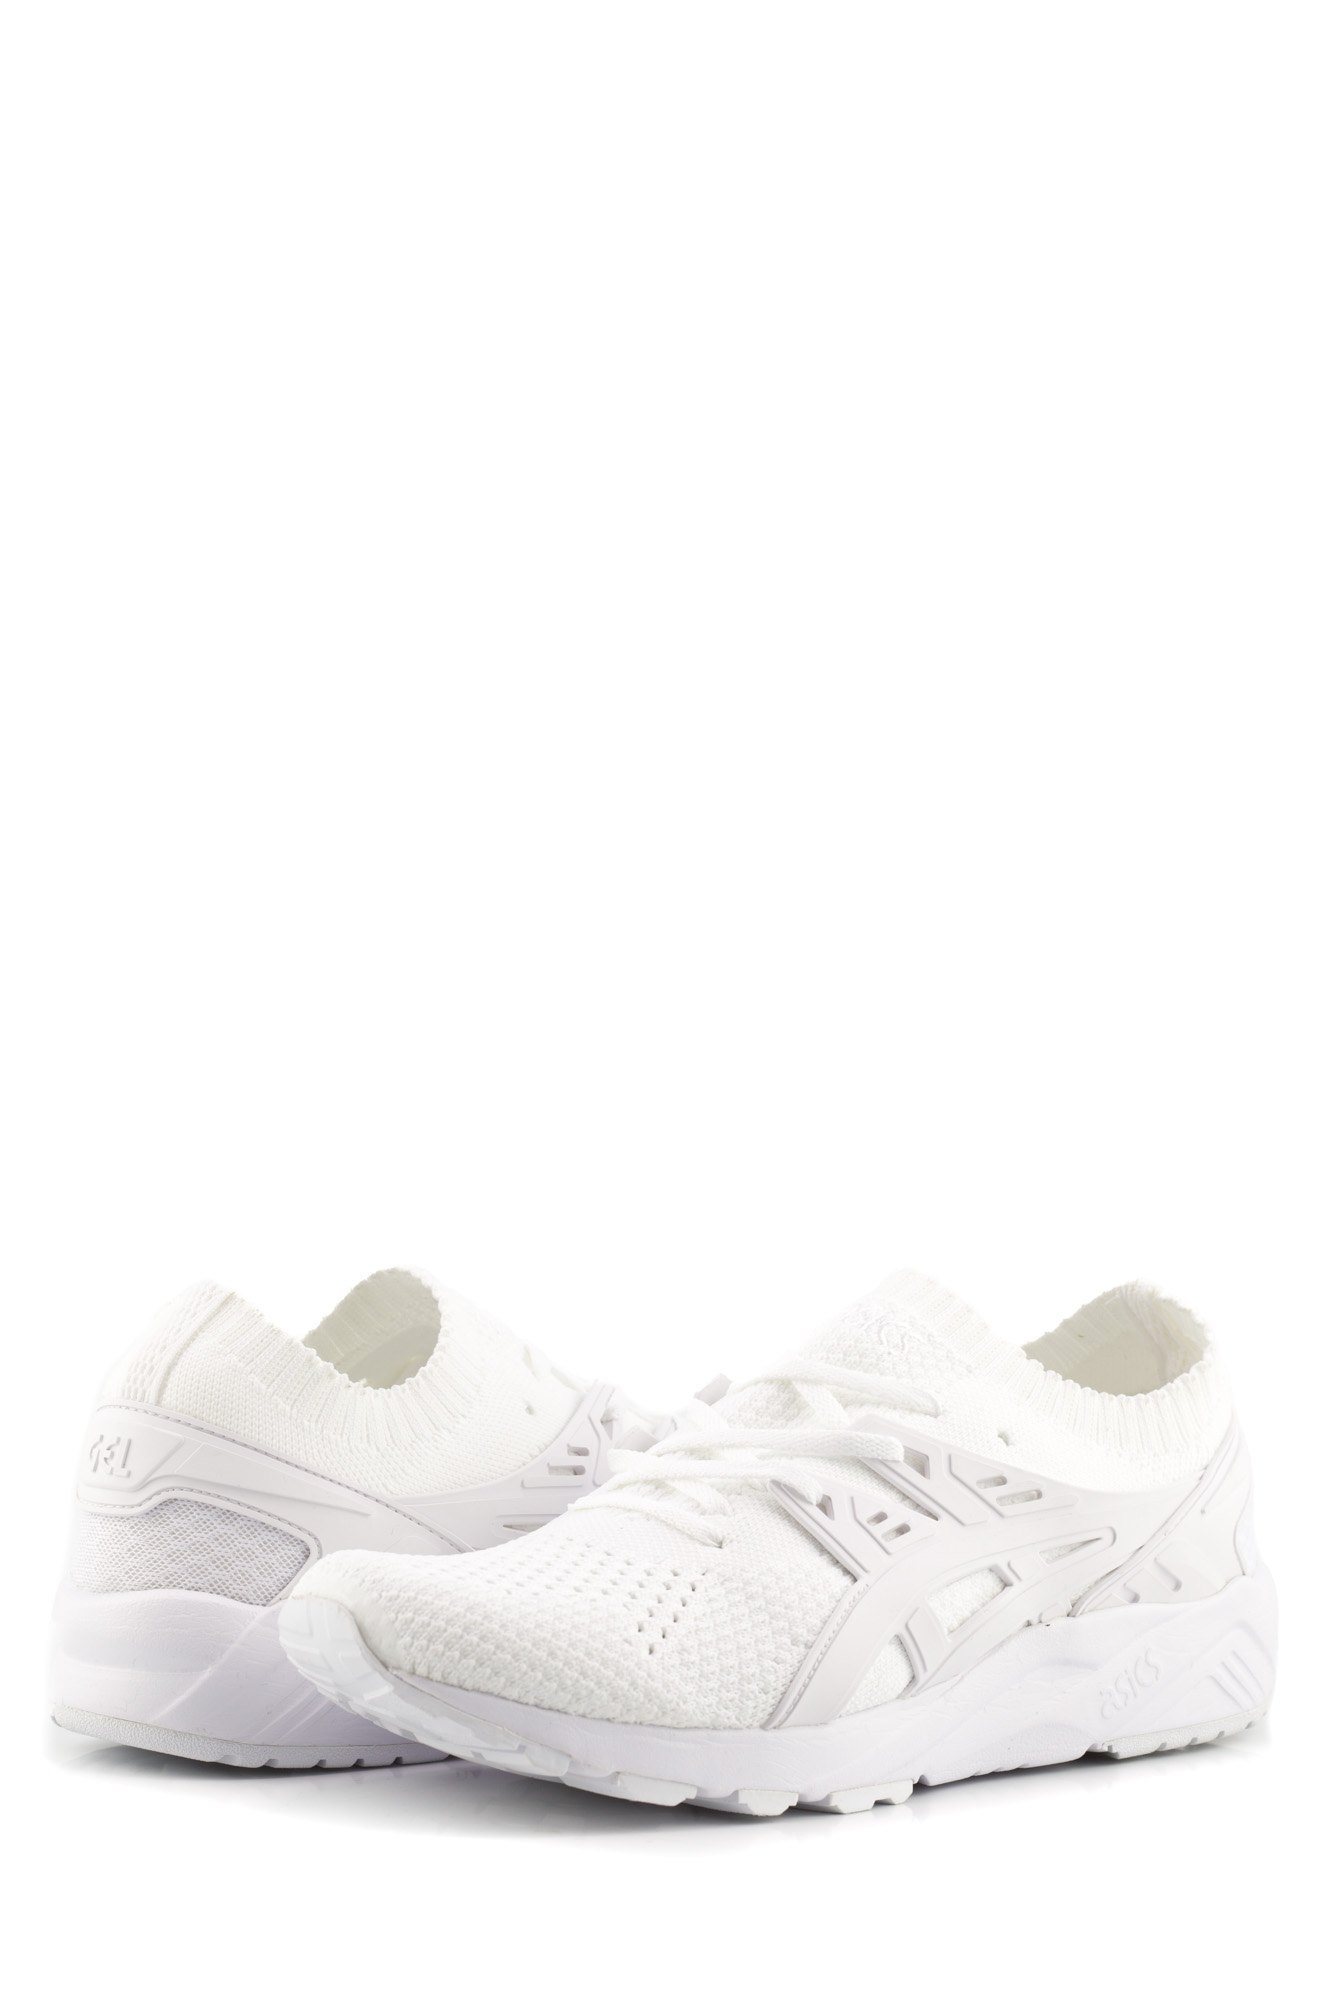 Asics - Gel Kayano Trainer Knit White